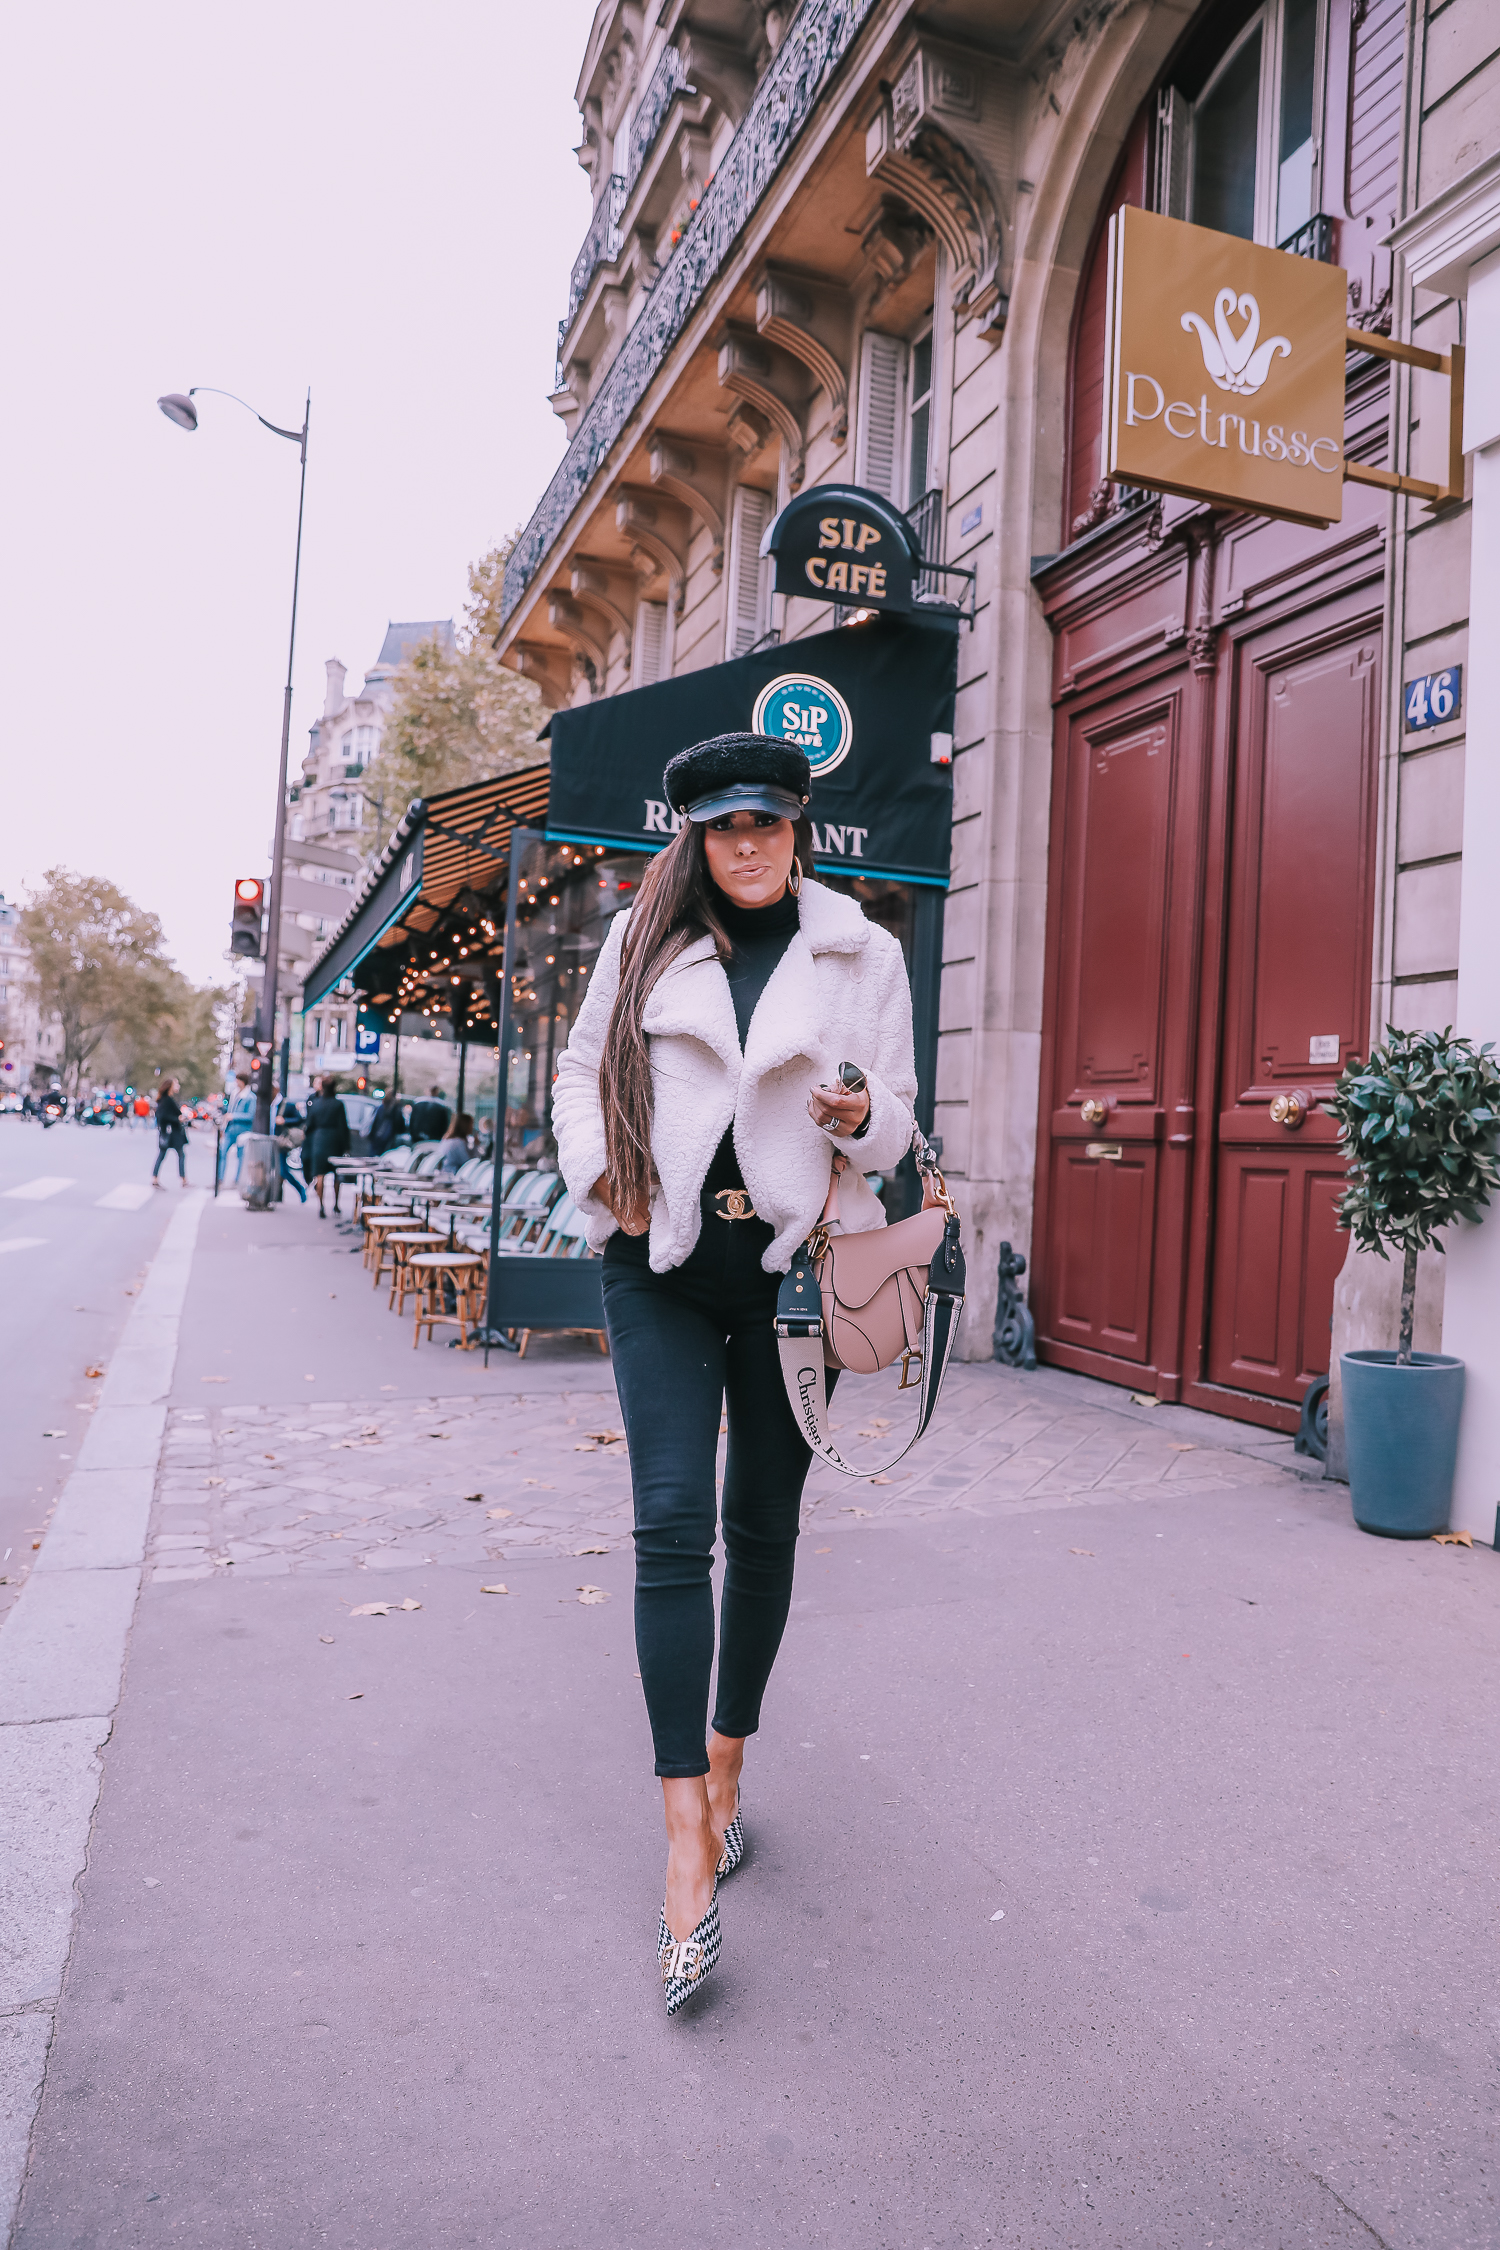 Ivory Peacoat styled by top US fashion blog, The Sweetest Thing: image of a woman wearing a BB Dakota ivory peacoat in Paris. | fall outfit ideas pinterest 2019, paris fall outfit ideas, dior saddle bag nude with straps, dior saddle bag blush saddle bag, emily ann gemma-2